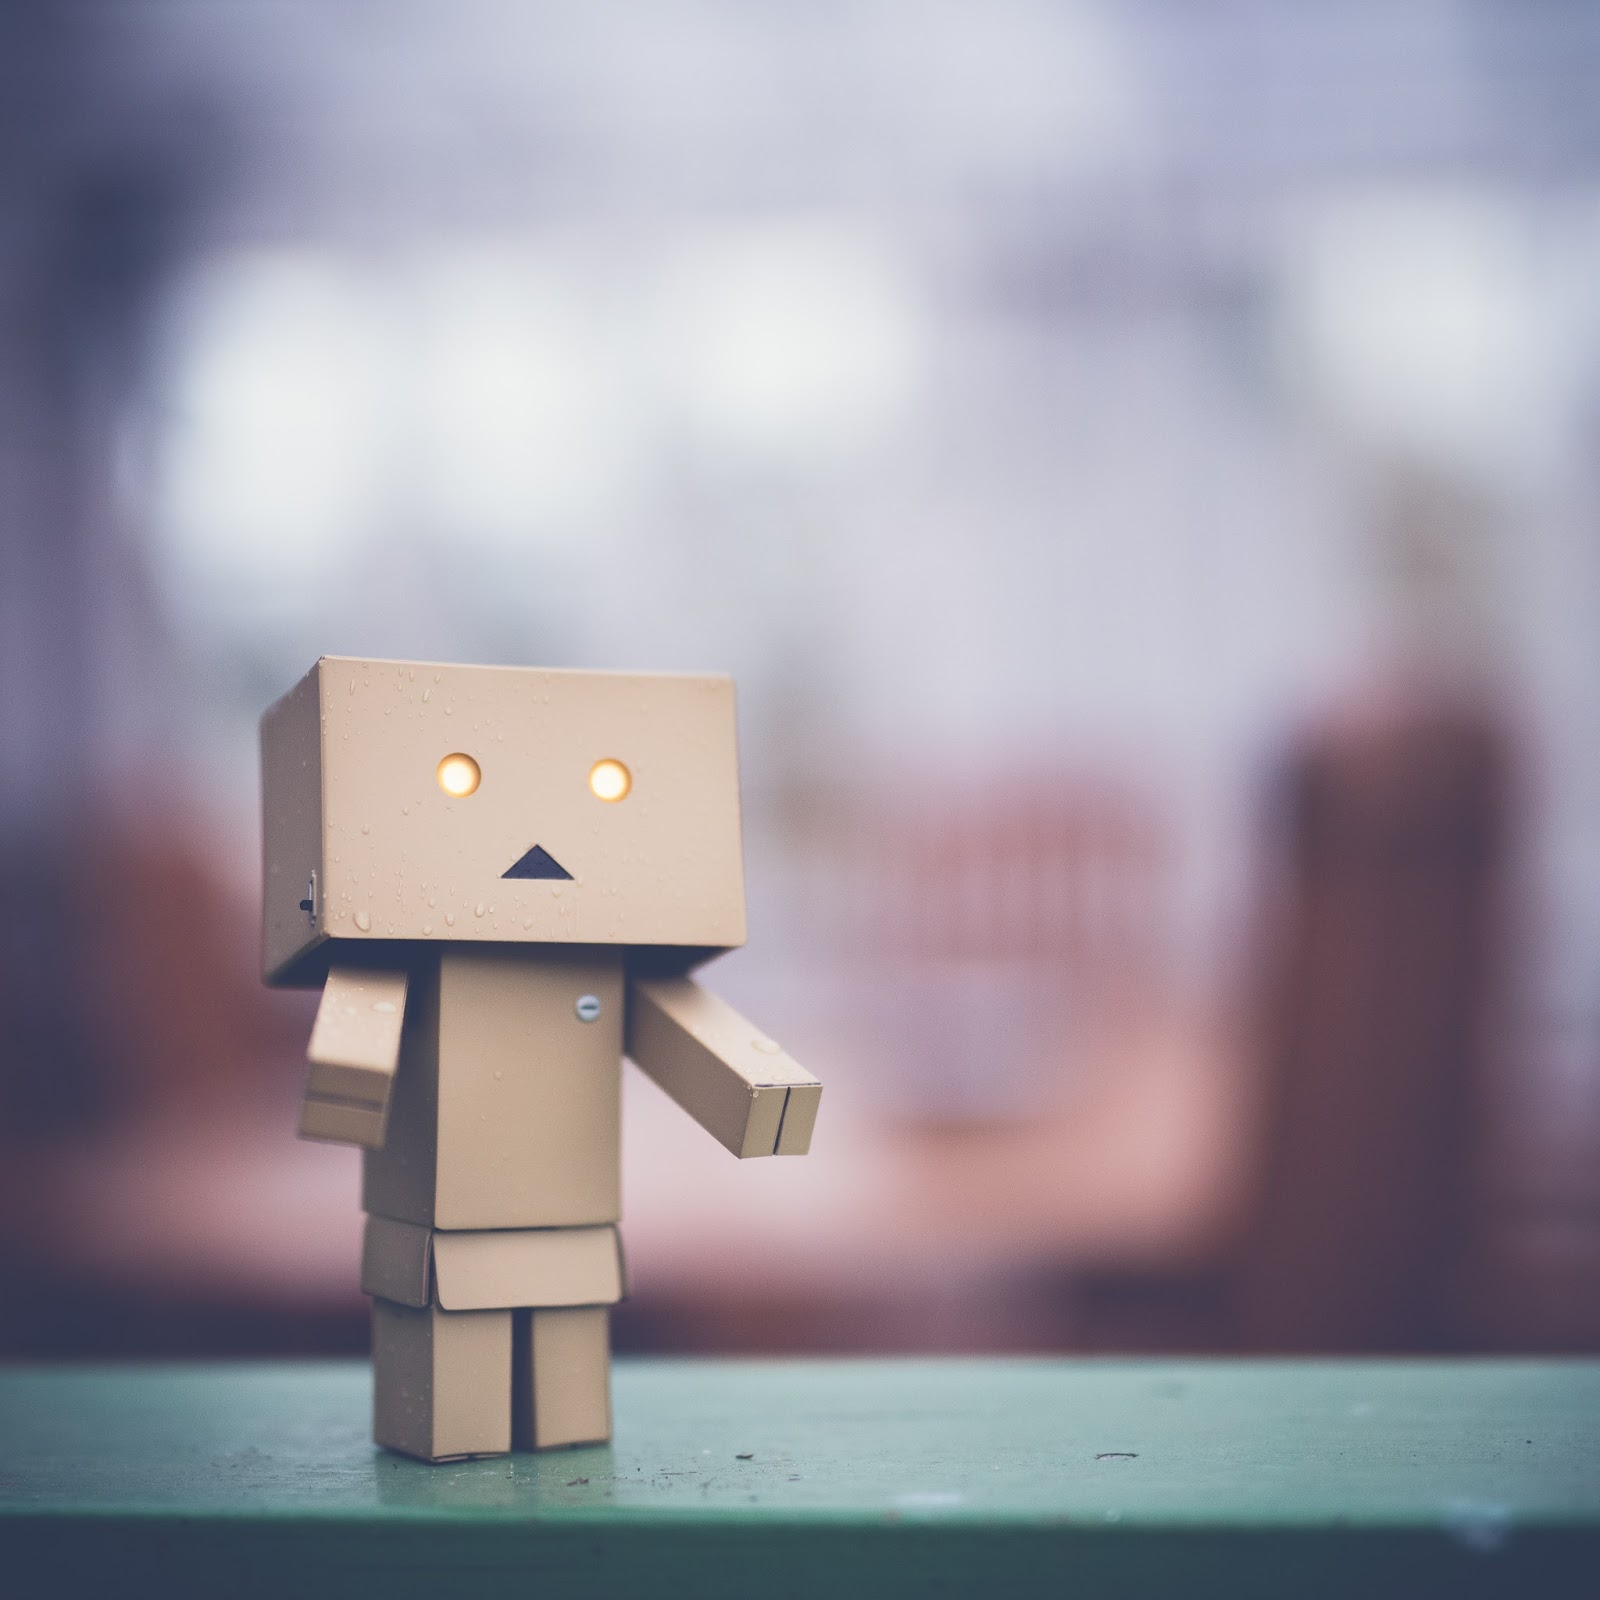 negative thinking - cardboard robot with a grumpy face